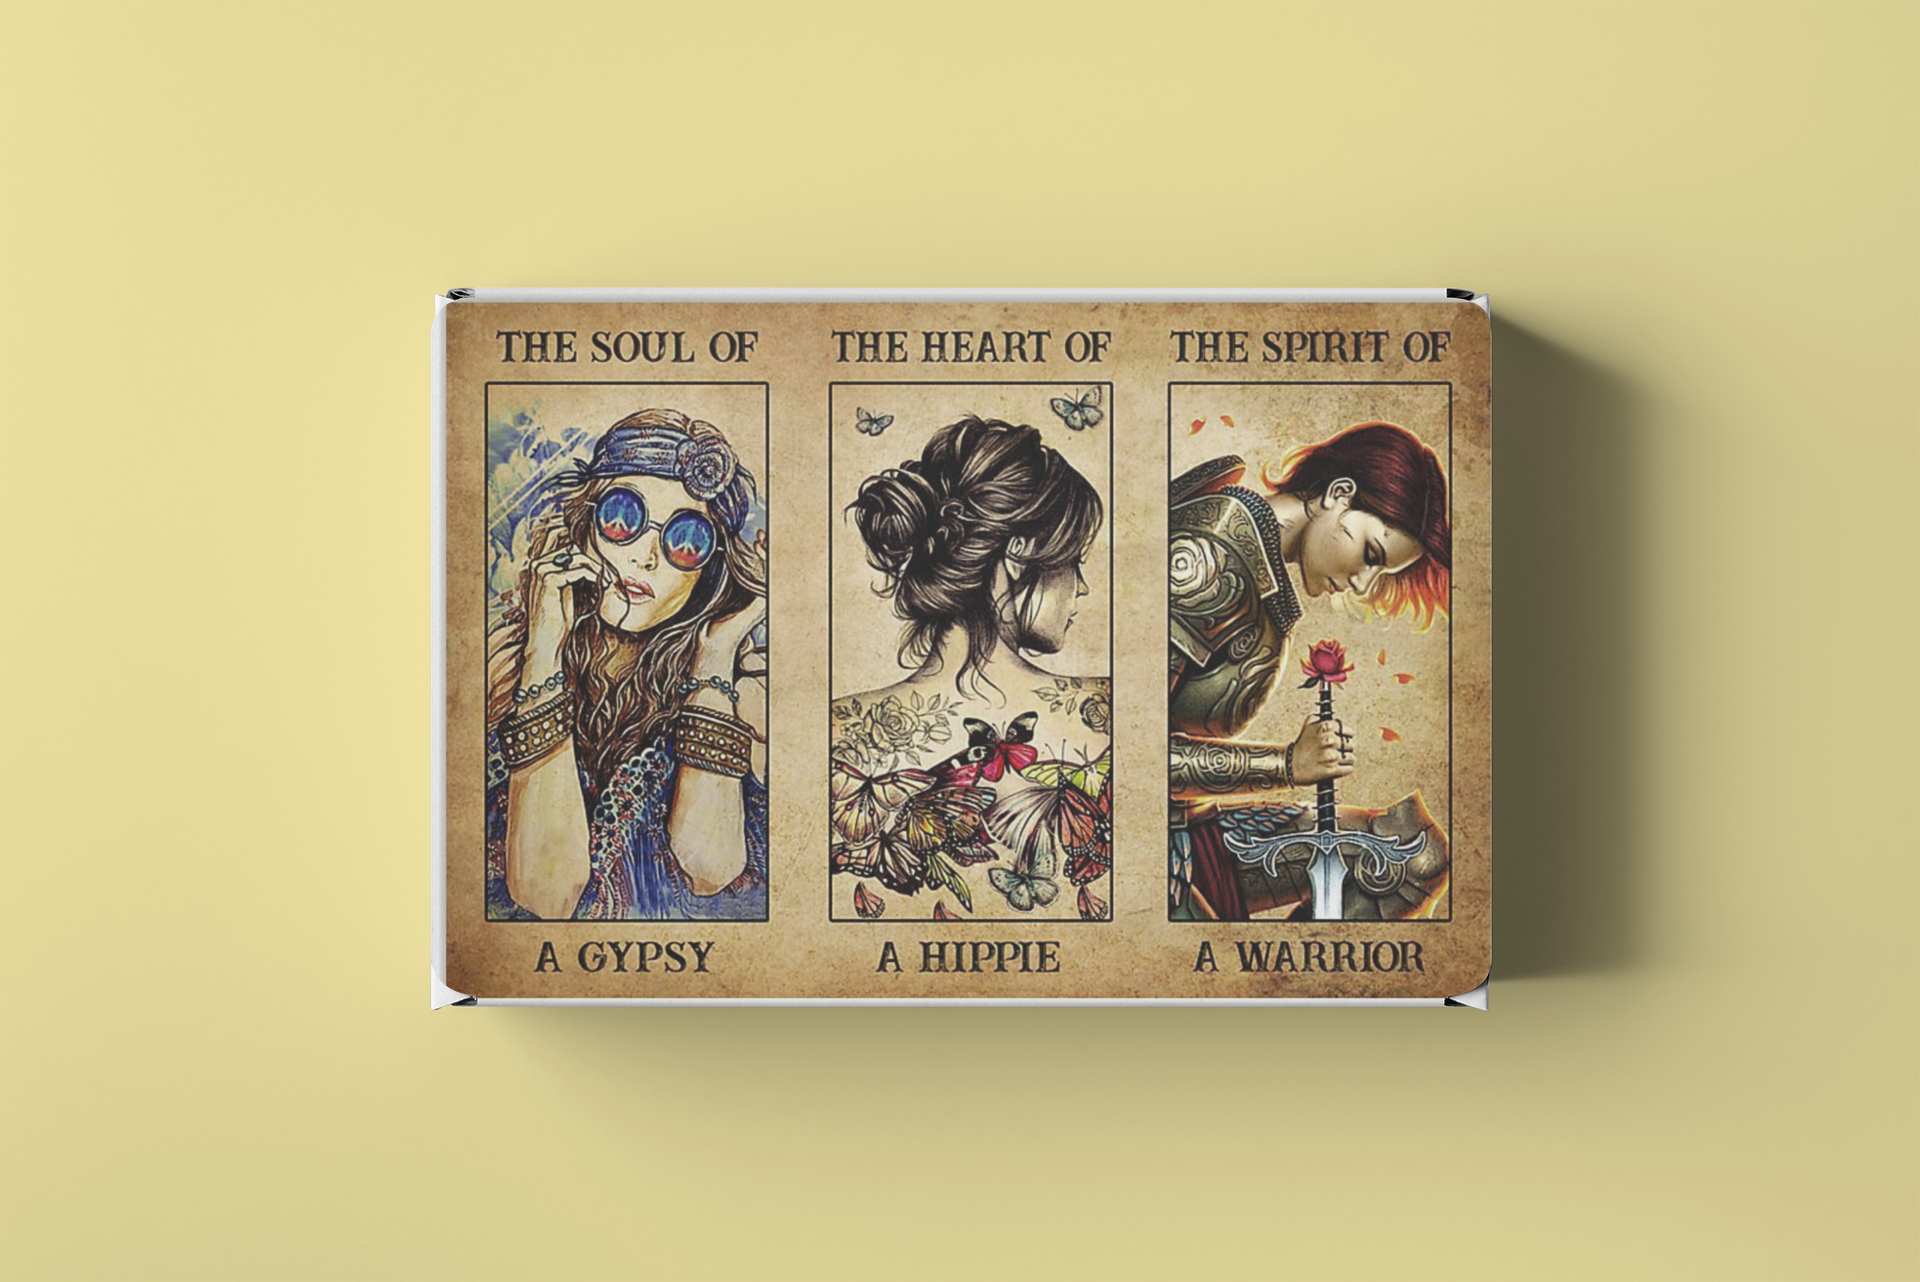 Hippie warrior girl The soul of a gypsy the heart of a hippie the spirit of a warrior poster